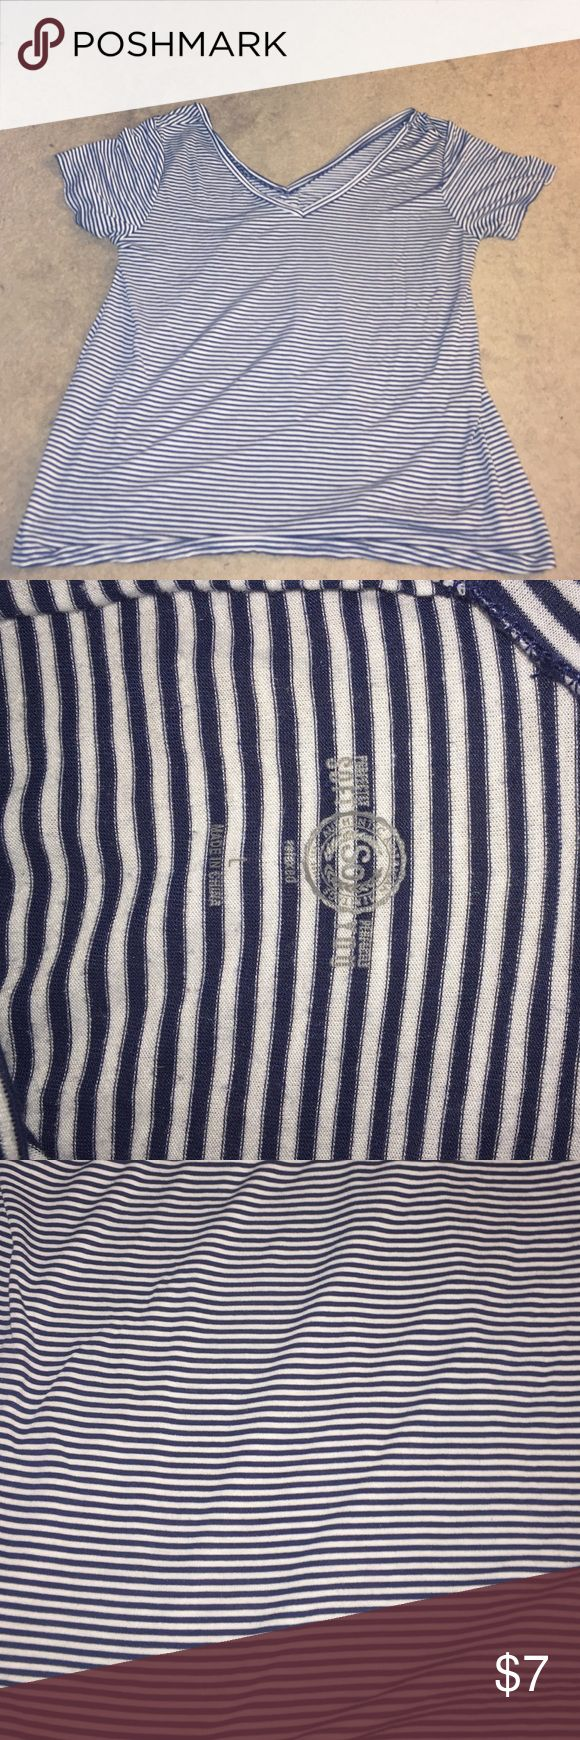 Blue and White Striped Relaxed Tee! Worn once! It kind of falls of the shoulders for a relaxed look. Has vneck in the front and back so it looks great with a messy braid. SO Tops Tees - Short Sleeve